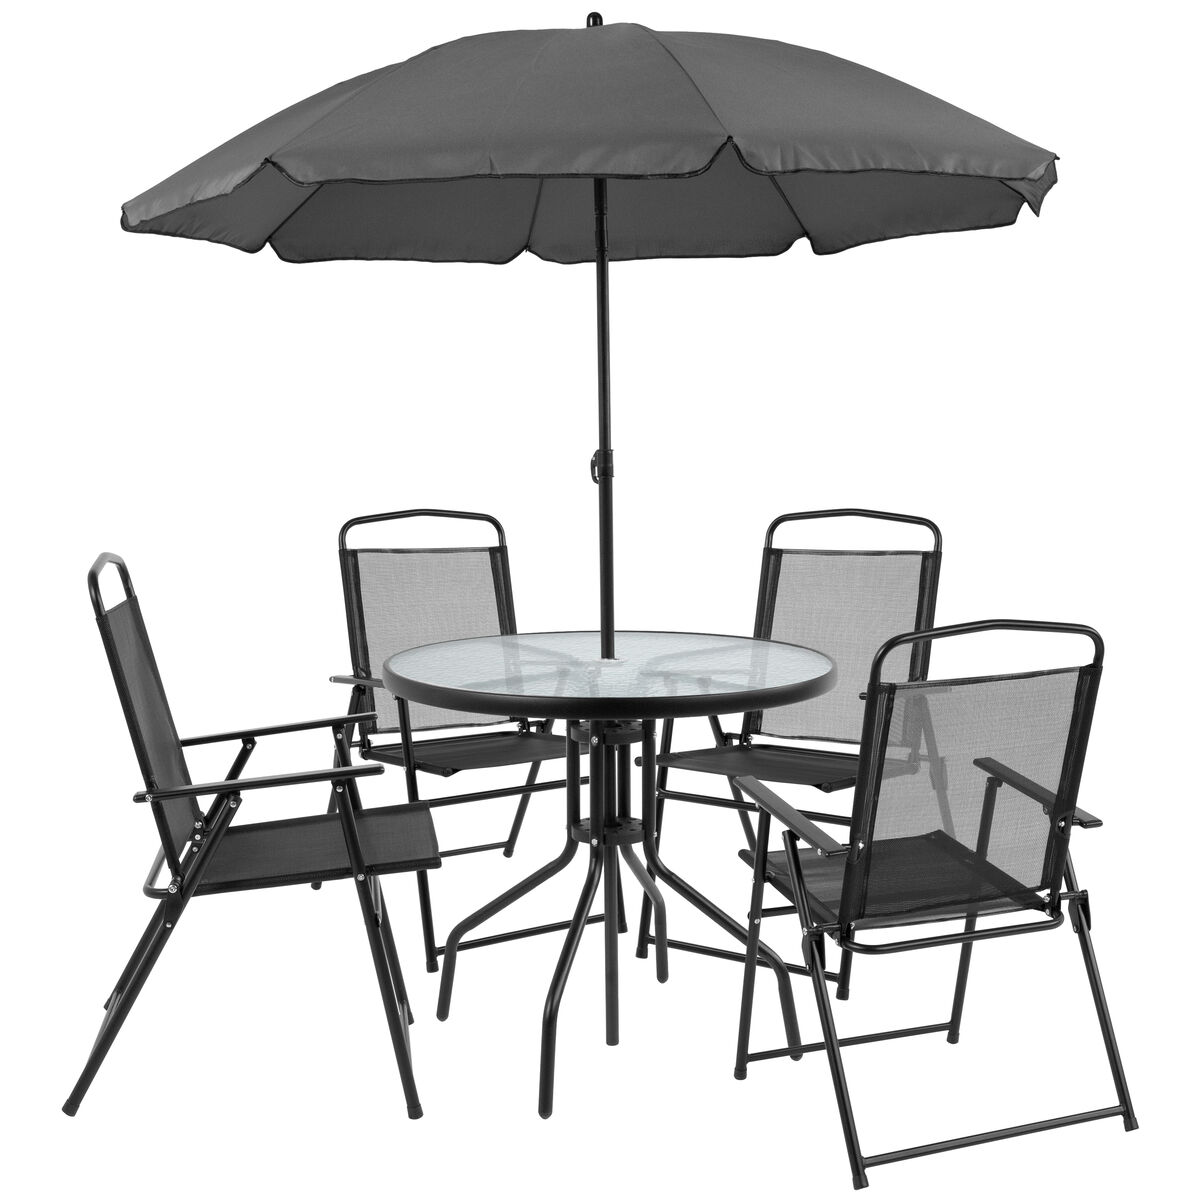 Patio Table Sets With Umbrella: 6PC Black Patio Set & Umbrella GM-202012-BK-GG